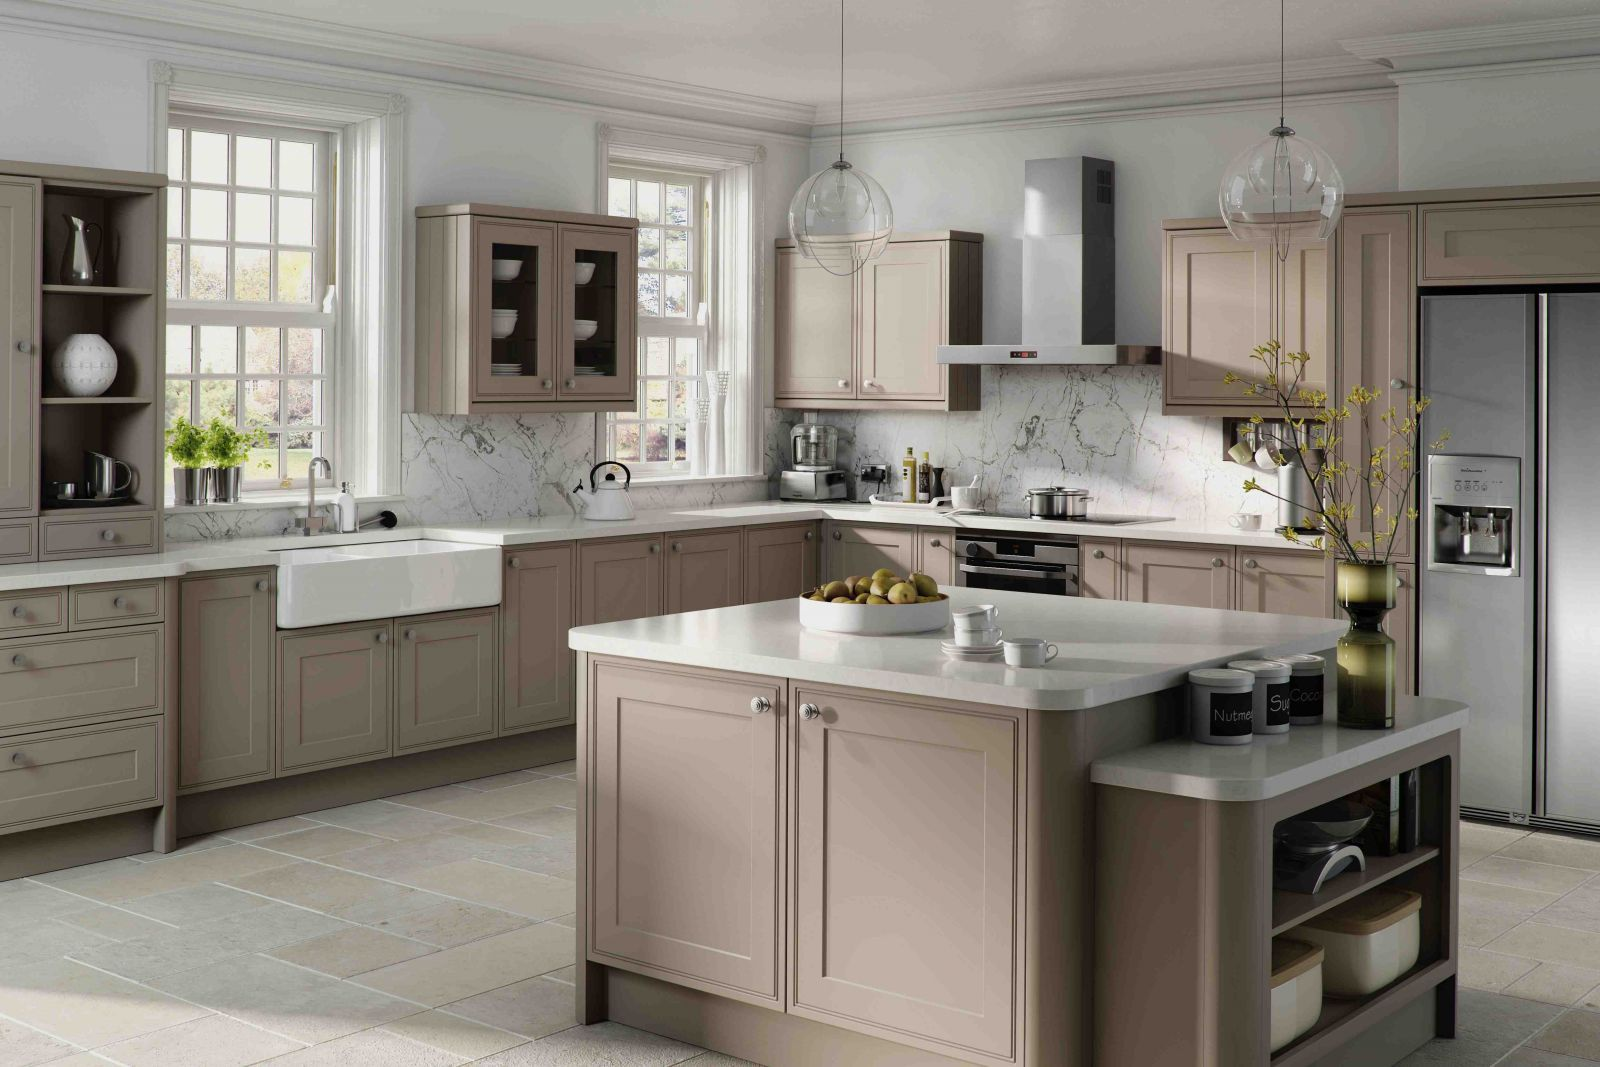 Gray Kitchen Cabinets White Kitchen Design Cabinets Grey Wallsjpg Timticks Interior Design Grey Kitchen Designs Kitchen Cabinet Design Kitchen Style